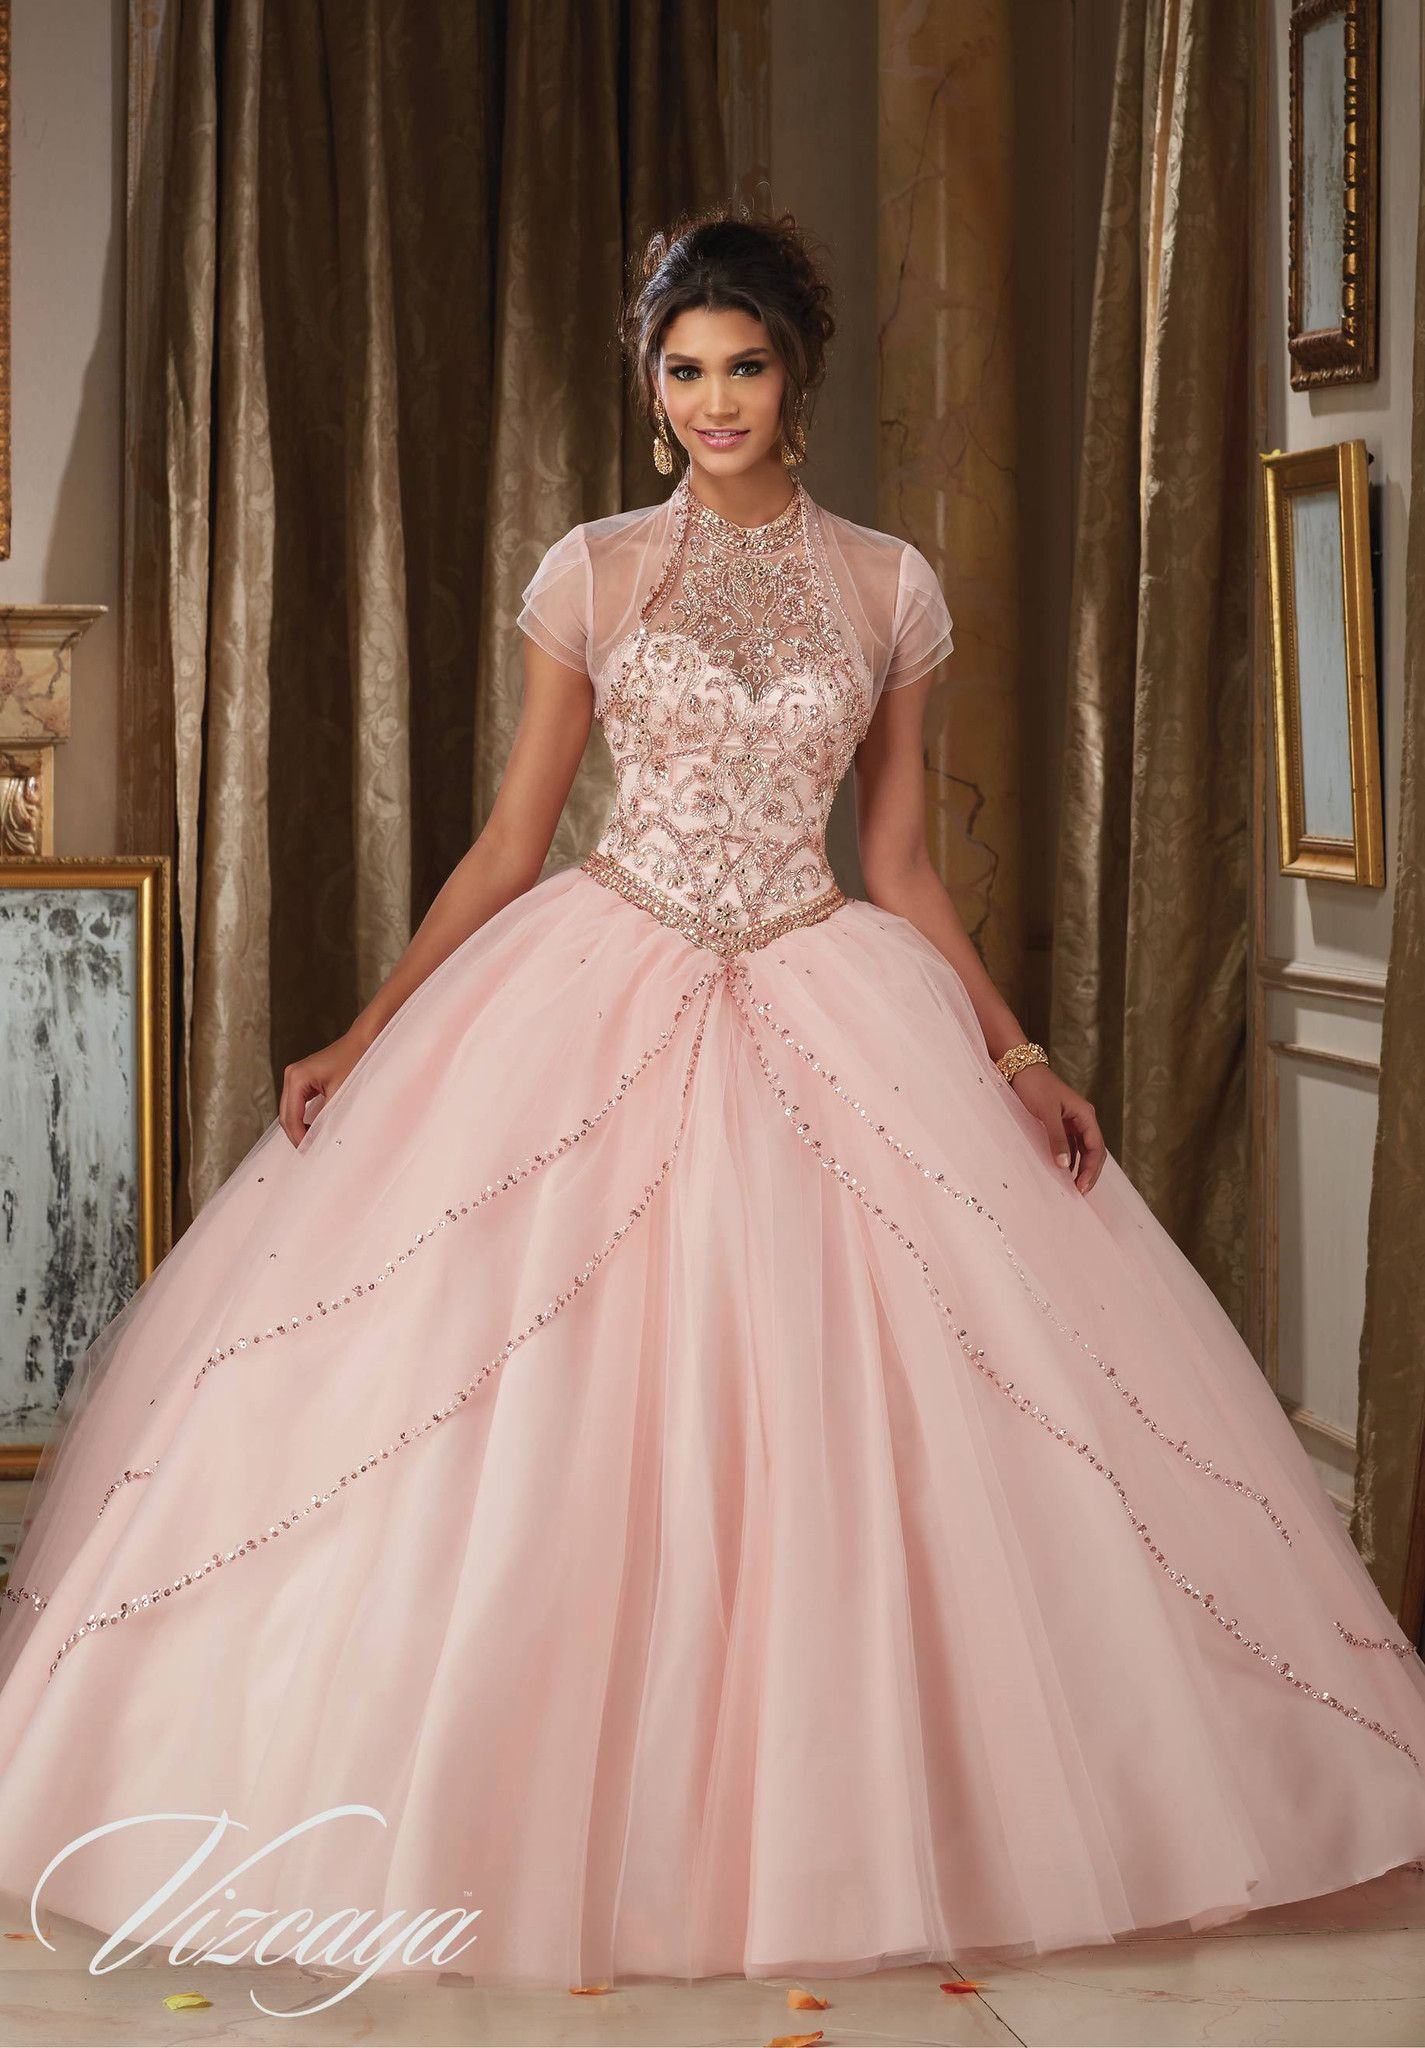 Mori Lee Quinceanera Dress 89114 | 15 años, Vestiditos y Quinceañera